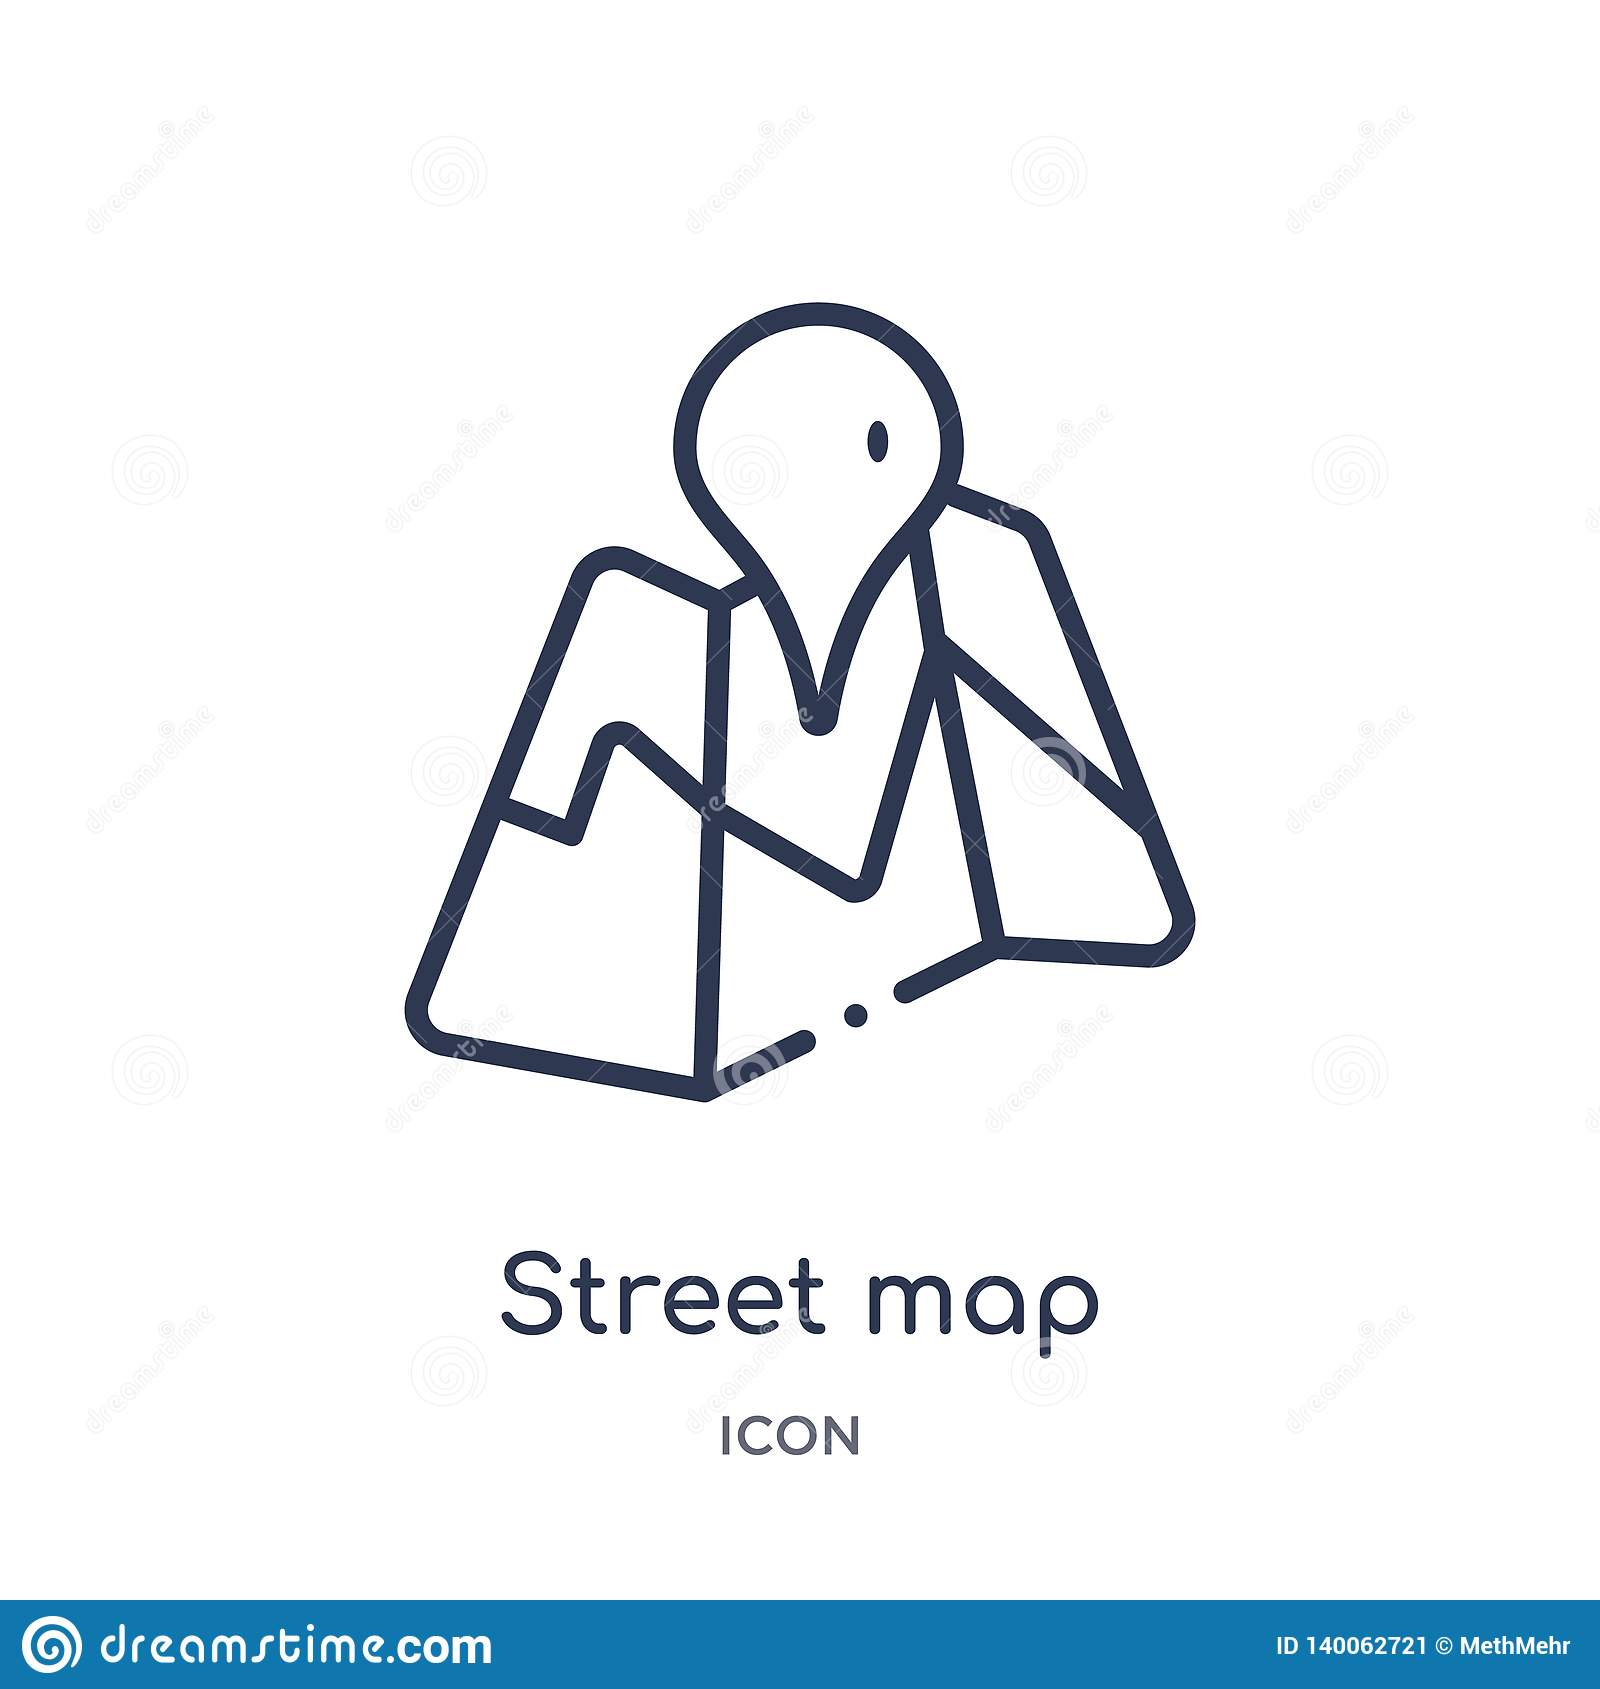 Linear street map icon from Maps and locations outline collection. Thin line street map icon isolated on white background. street